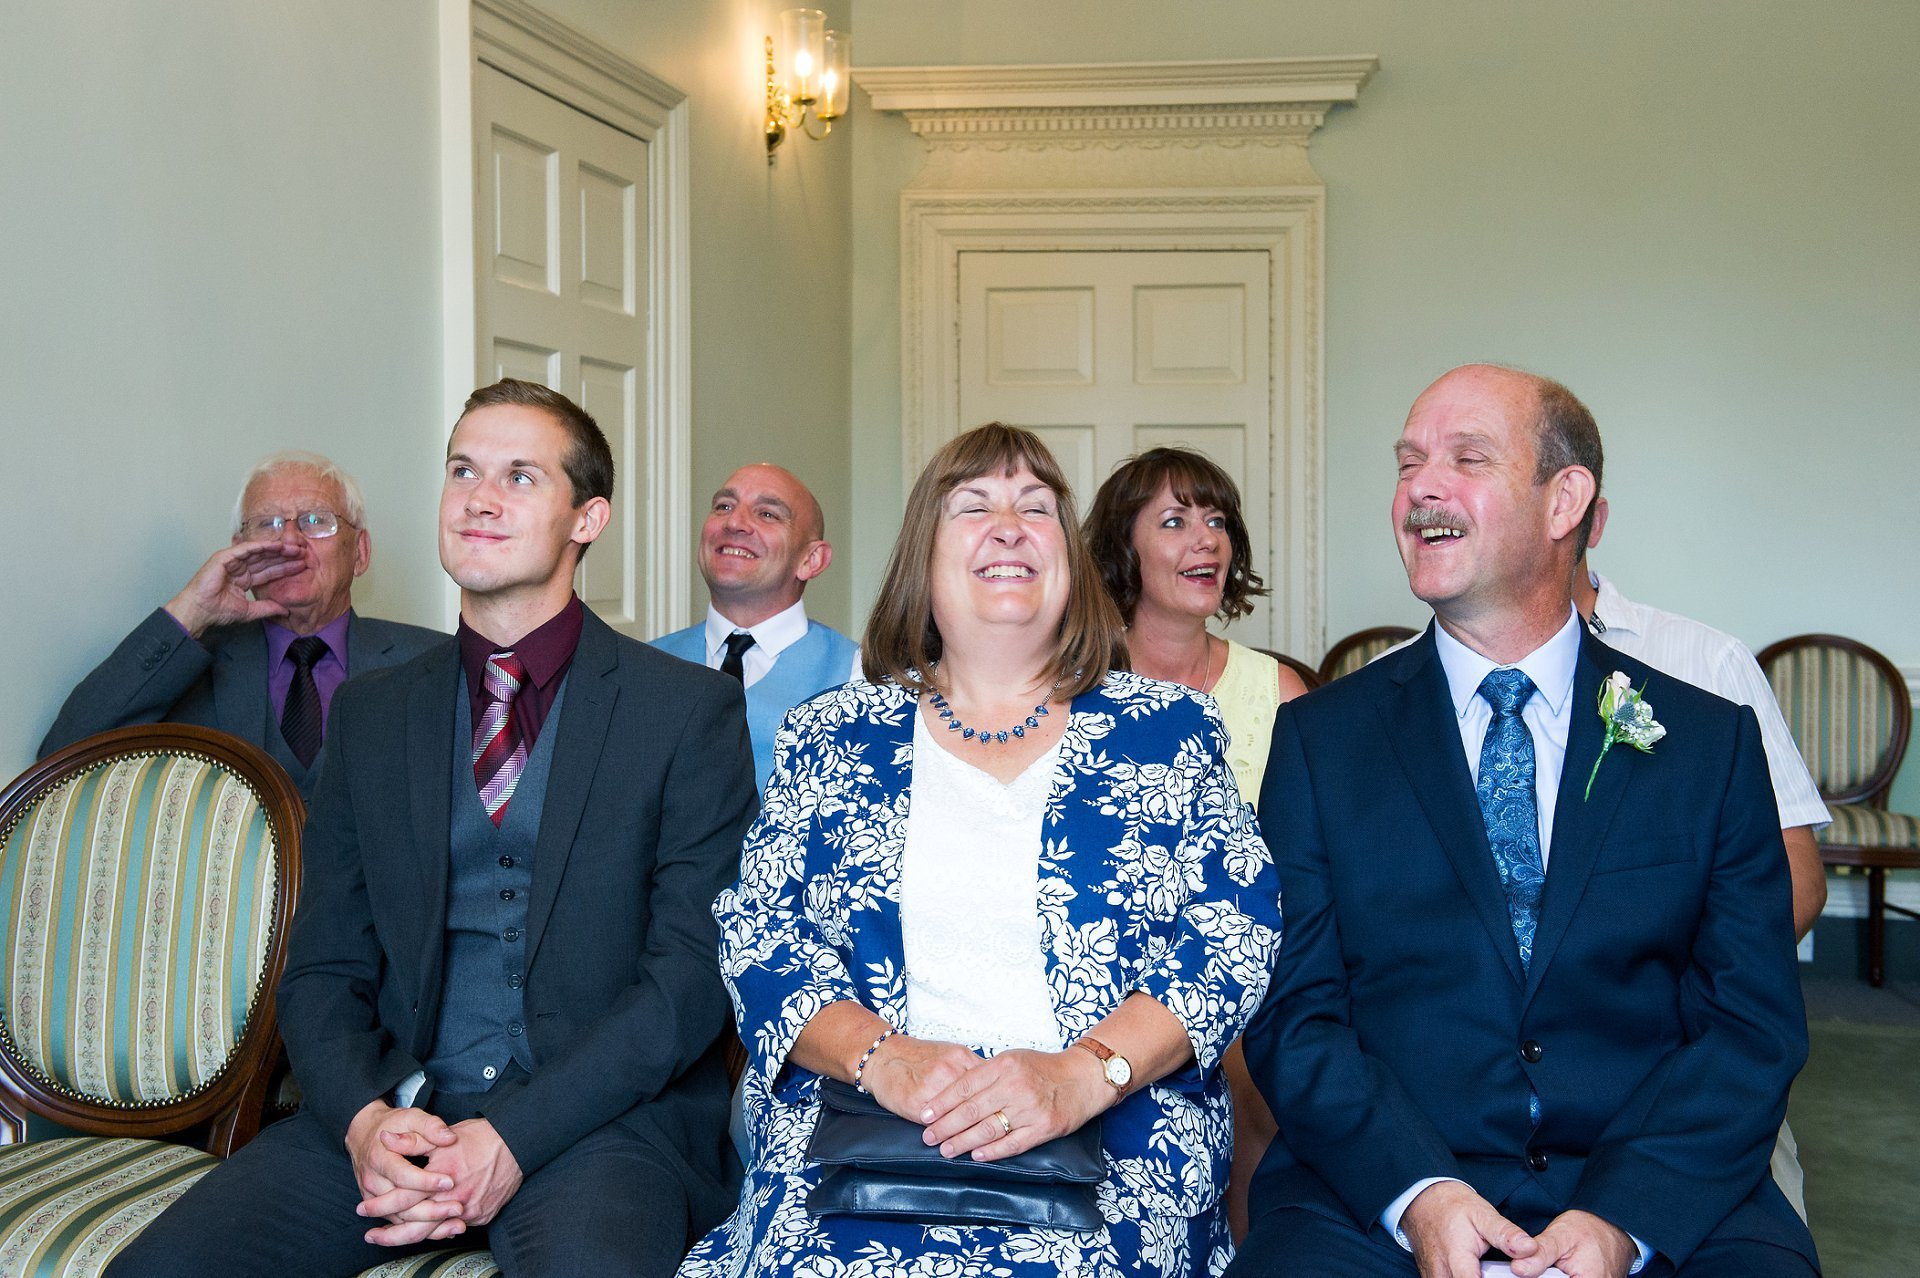 Guests in the Drawing Room ceremony venue at Park House in Horsham laughing as the bride and groom exchange their wedding vows